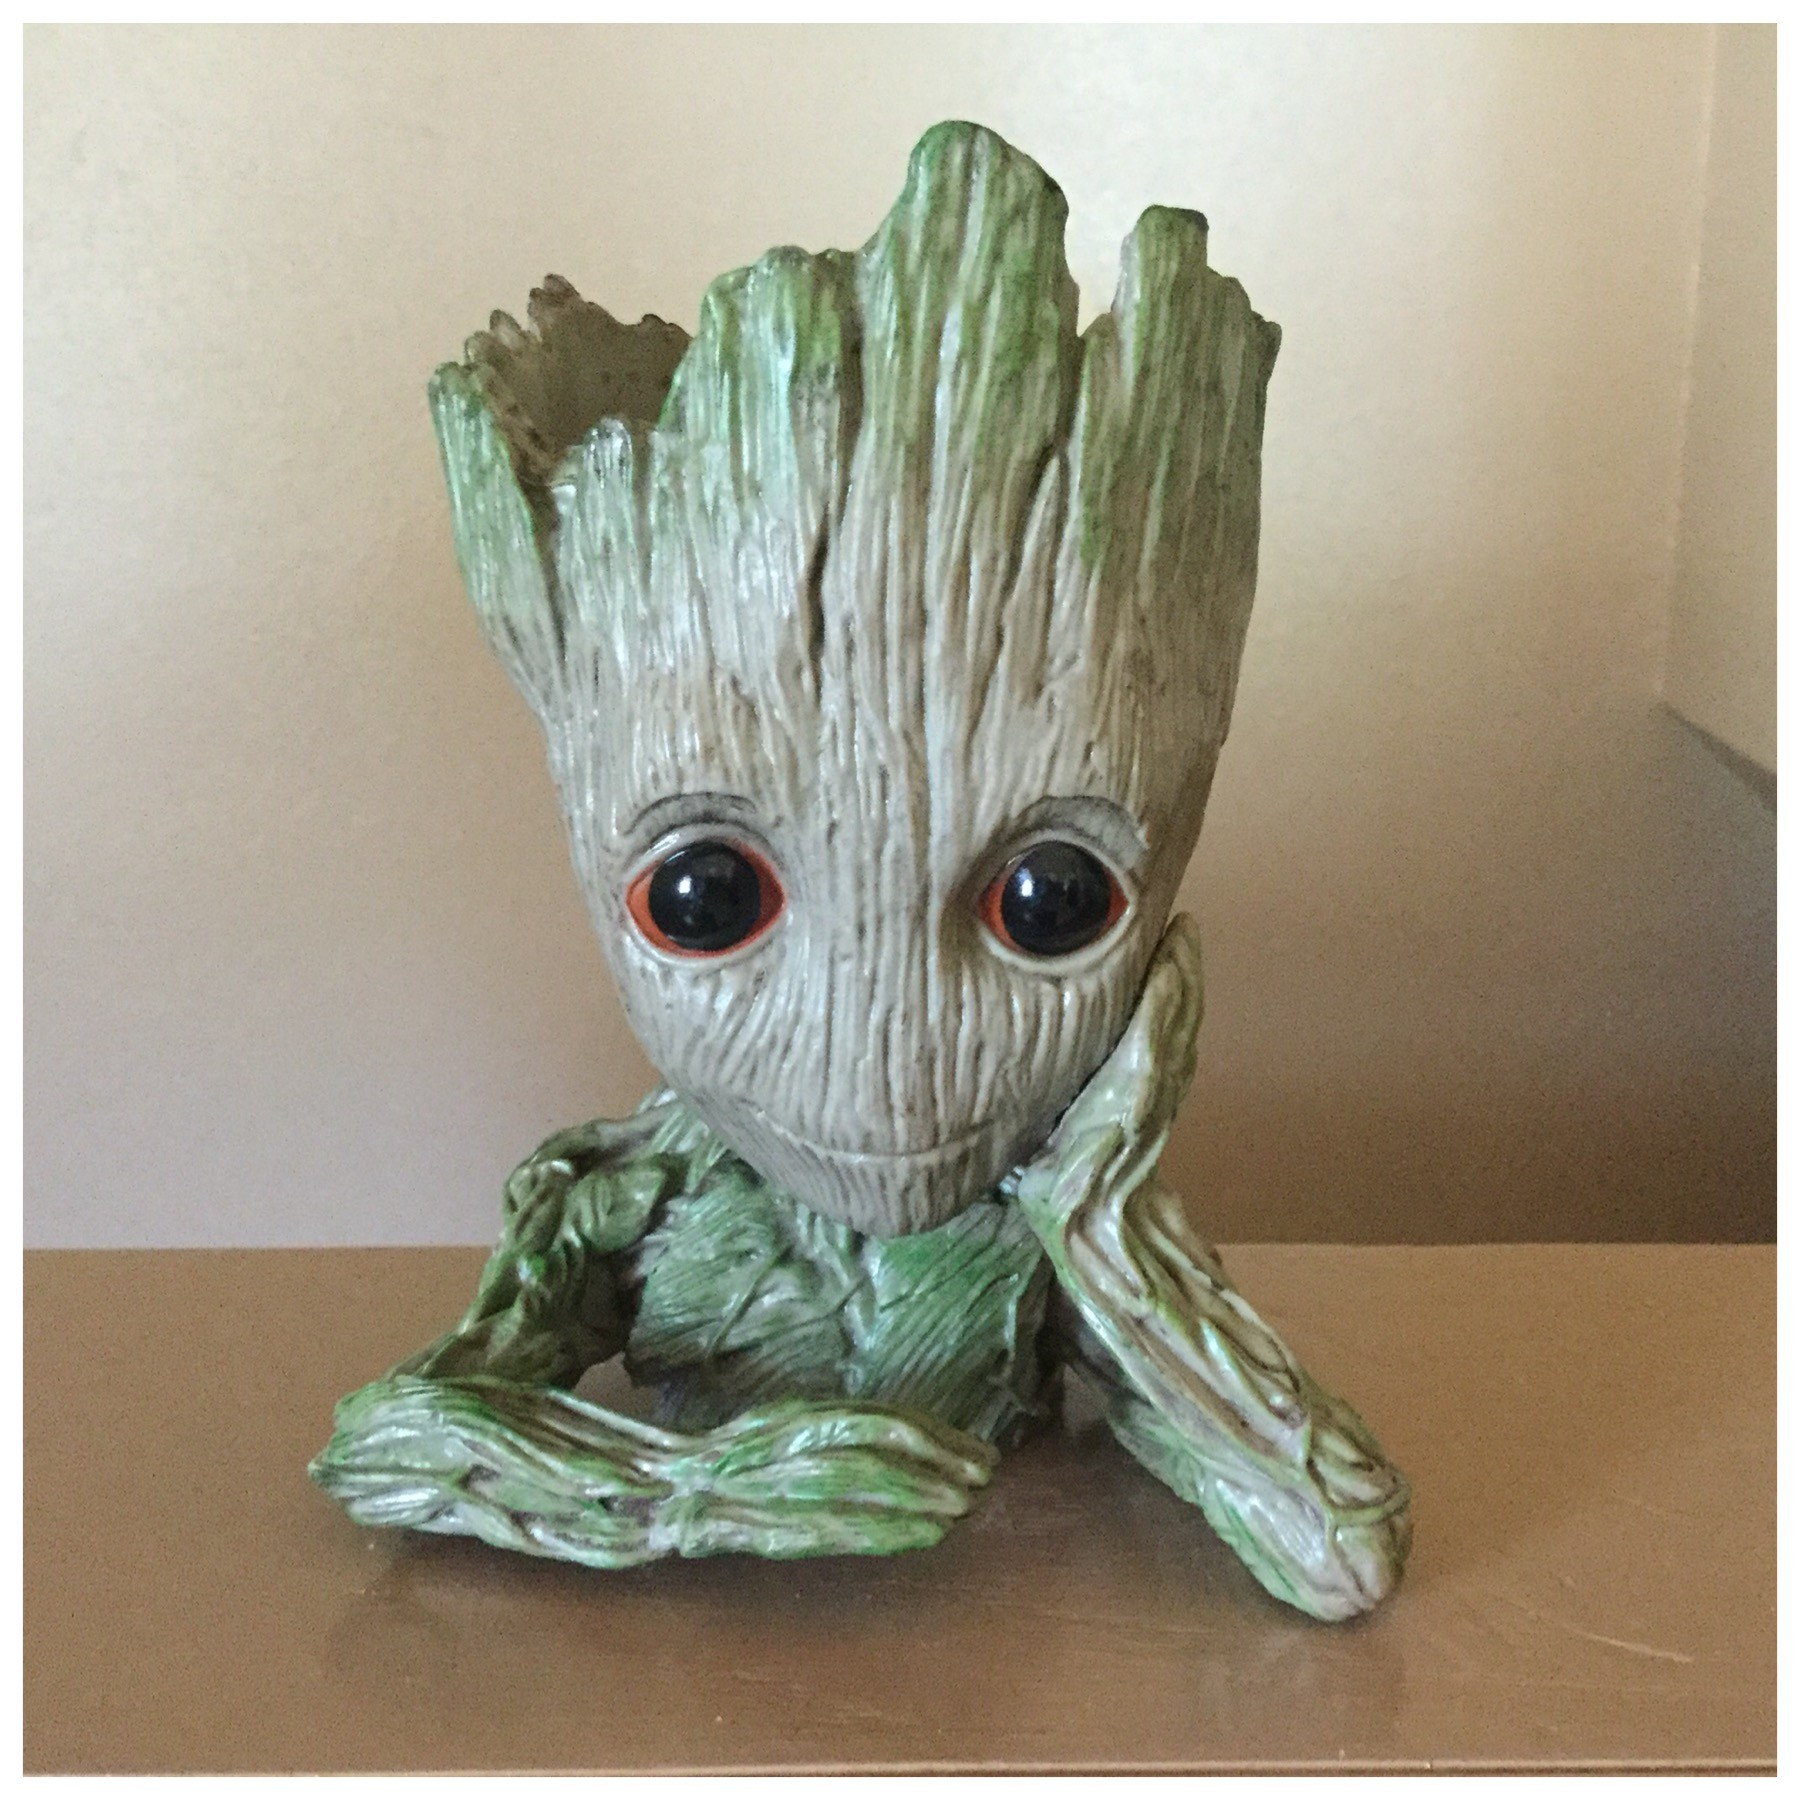 My friend Groot